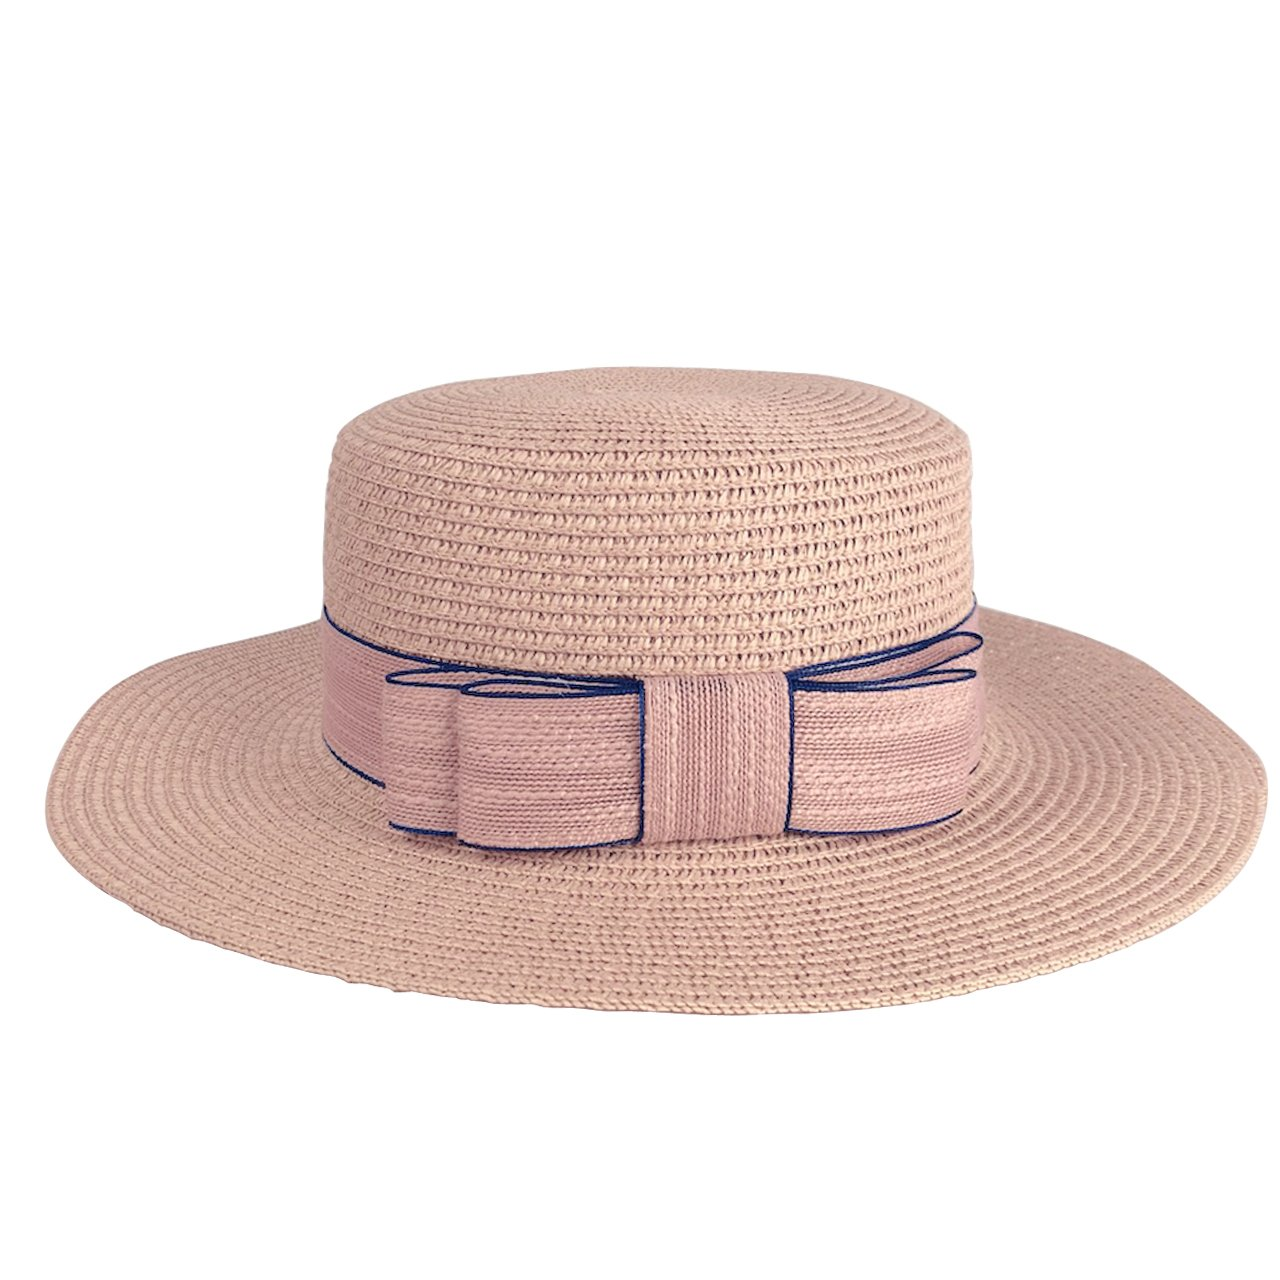 CHIC DIARY Women Bowknot Straw Hat Summer Fedoras Wide Brim Sun Hat (Pink)